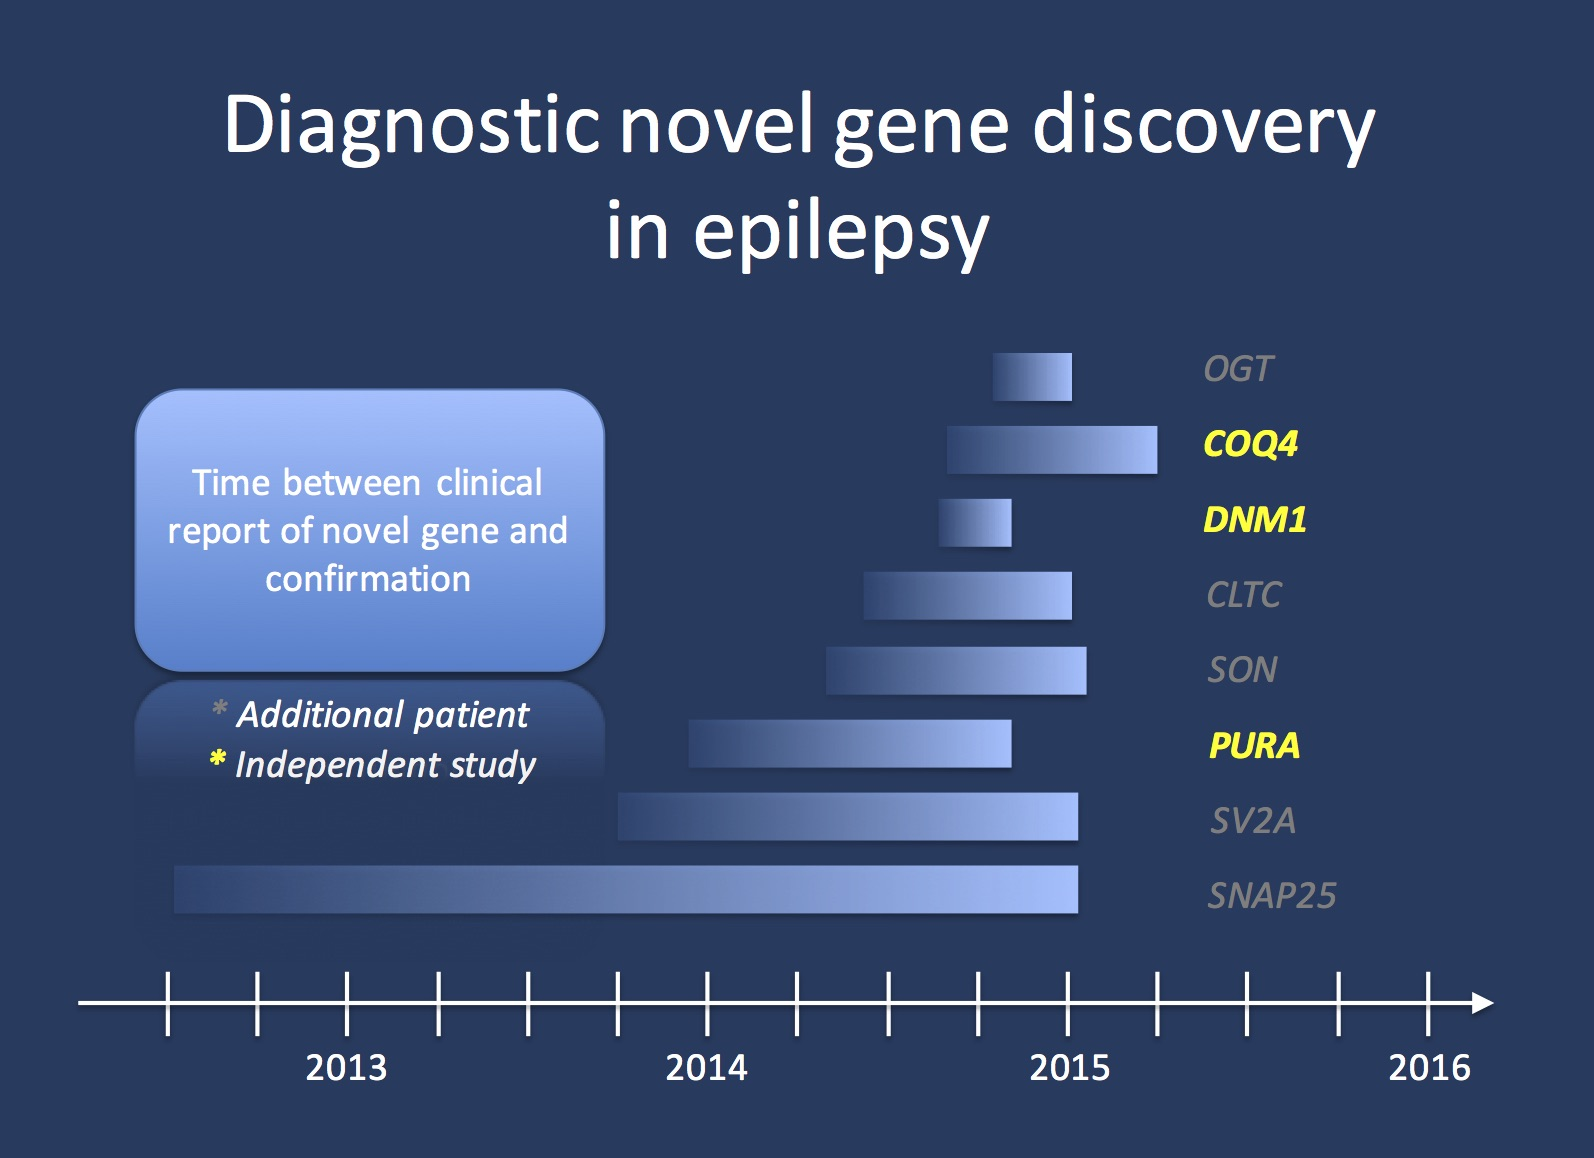 This figure demonstrates the time frame between the diagnostic exome report and an additional independent report for eight genes that were initially reported out as possible or probably positive novel genes. Three of these genes (COQ4, DNM1, PURA) have been independently confirmed as disease genes through peer-reviewed studies. Alterations in the other genes were found in at least one additional patient. This data should provide us with some estimate on the frequency of speed of how novel candidate genes convert into disease genes. In summary, we postulate a 20% annual conversion rate for good candidate genes.